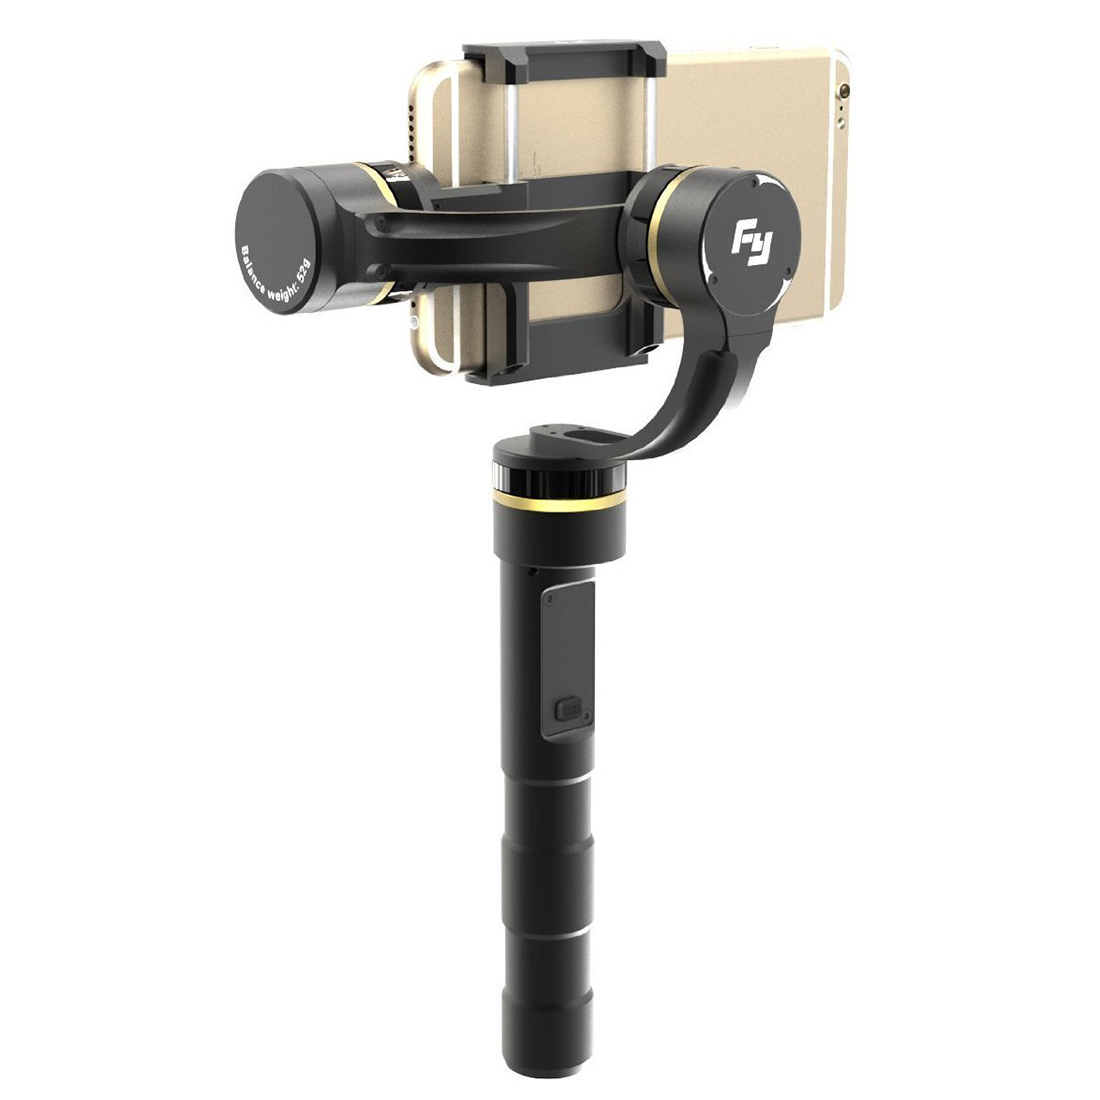 SCLS Feiyu FY-G4P+ 3-Axis Handheld Gimbal for Smartphones Including Samsung Note5 and iPhone 6 (Black) explay для смартфона explay craft